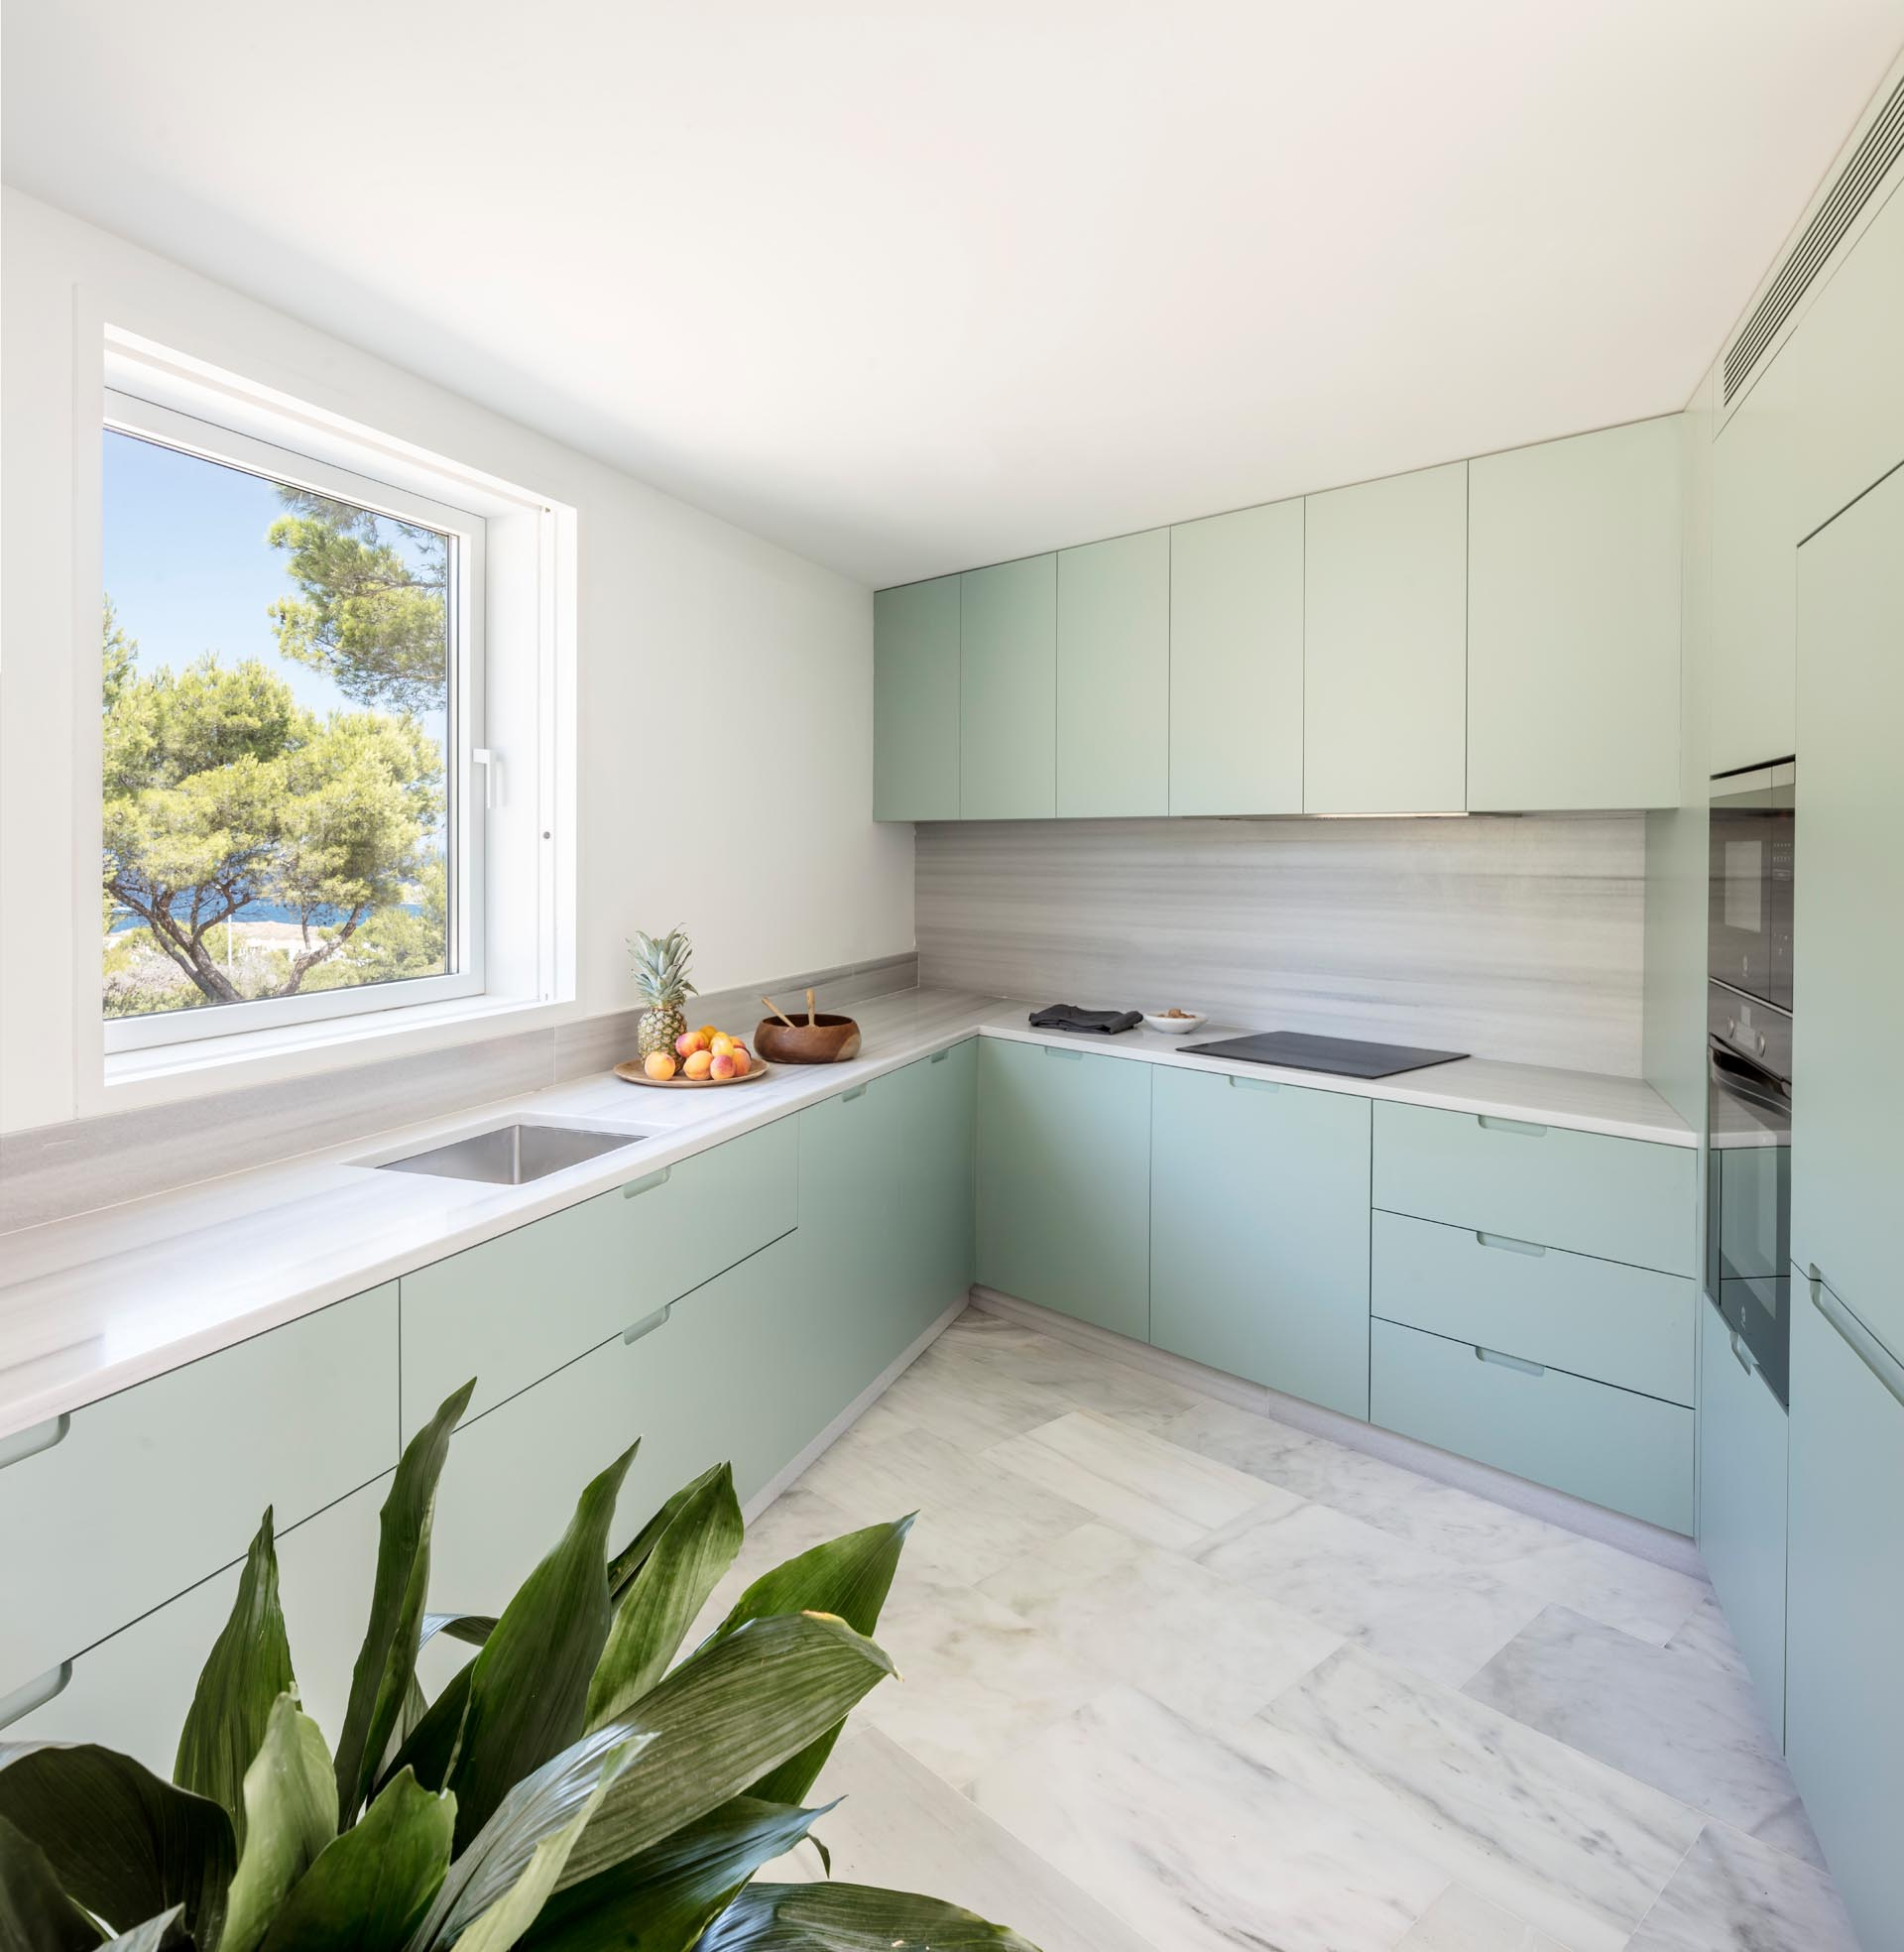 A modern kitchen with pastel green cabinets and a marble countertop and backsplash.